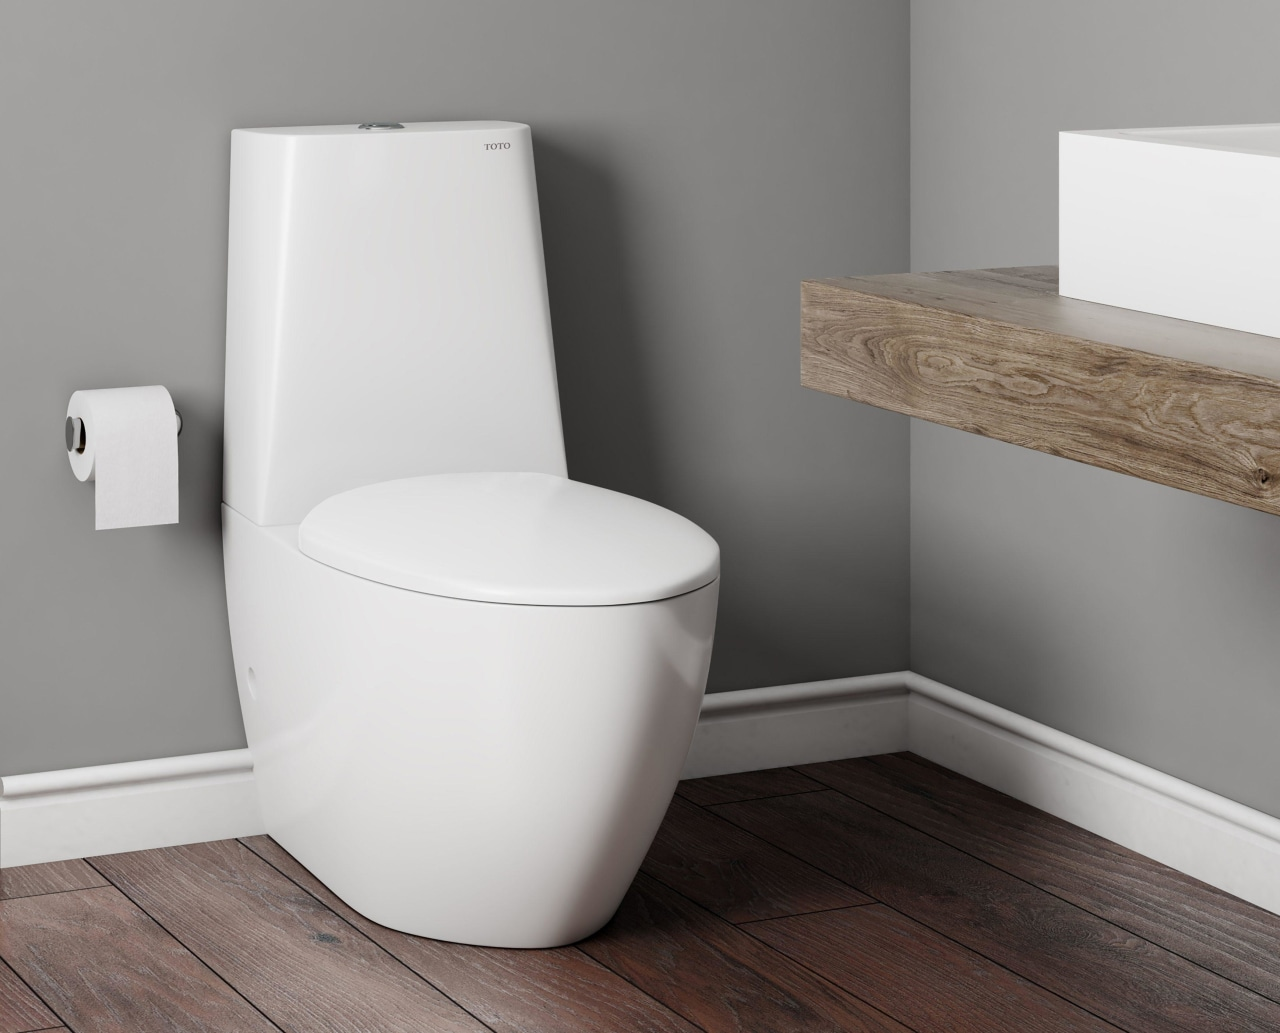 TOTO Valdes Basin and Le Muse Toilet Suite gray, white